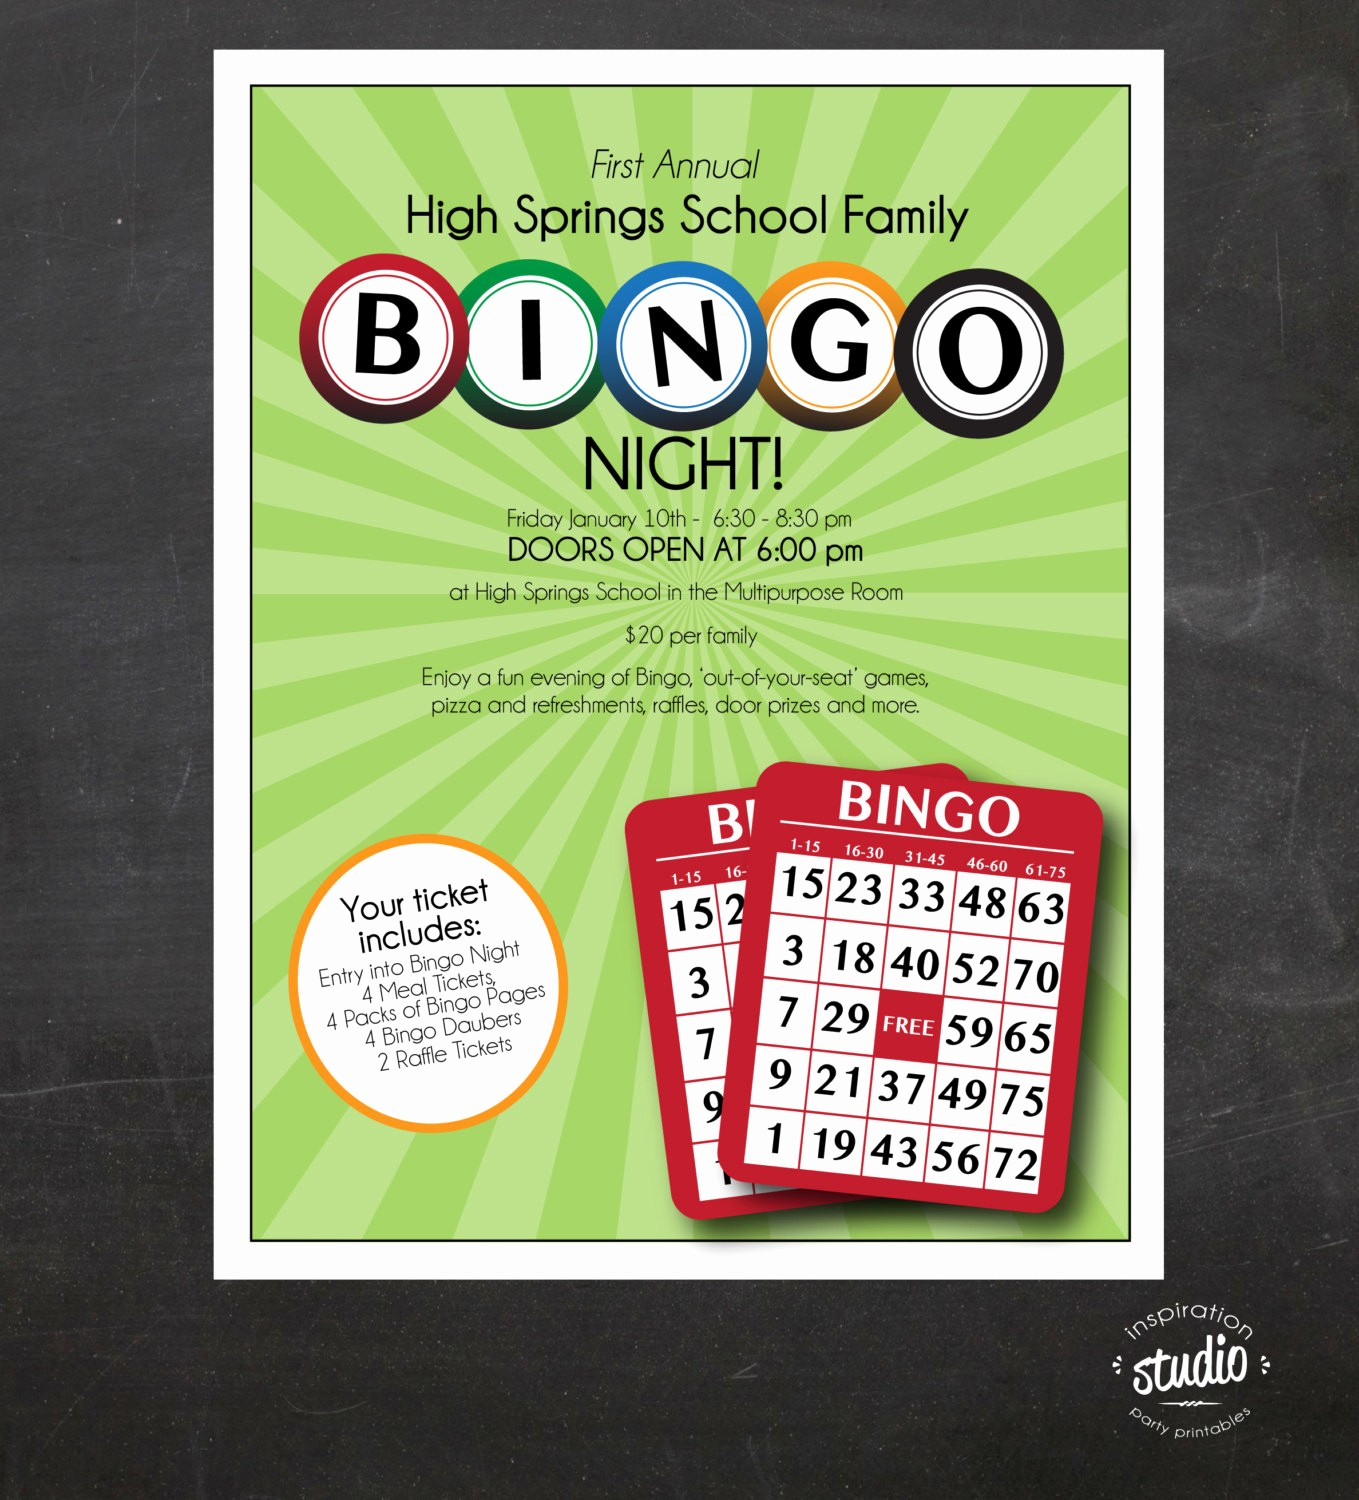 Family Fun Night Flyer Template Unique Bingo Night Flyer Family Mother son Night School or Church